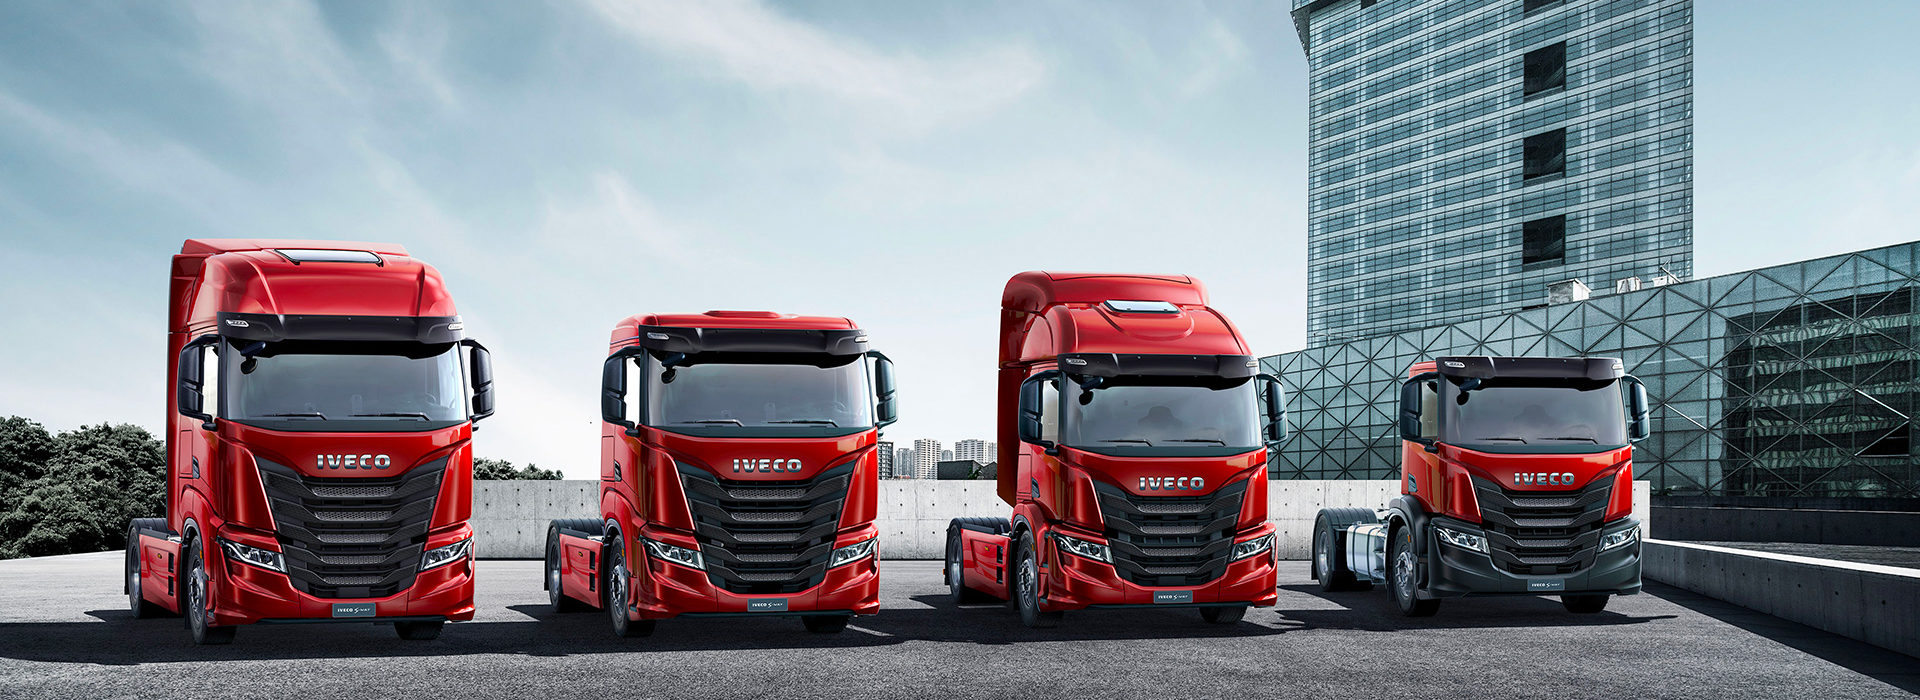 iveco-s-way-banner